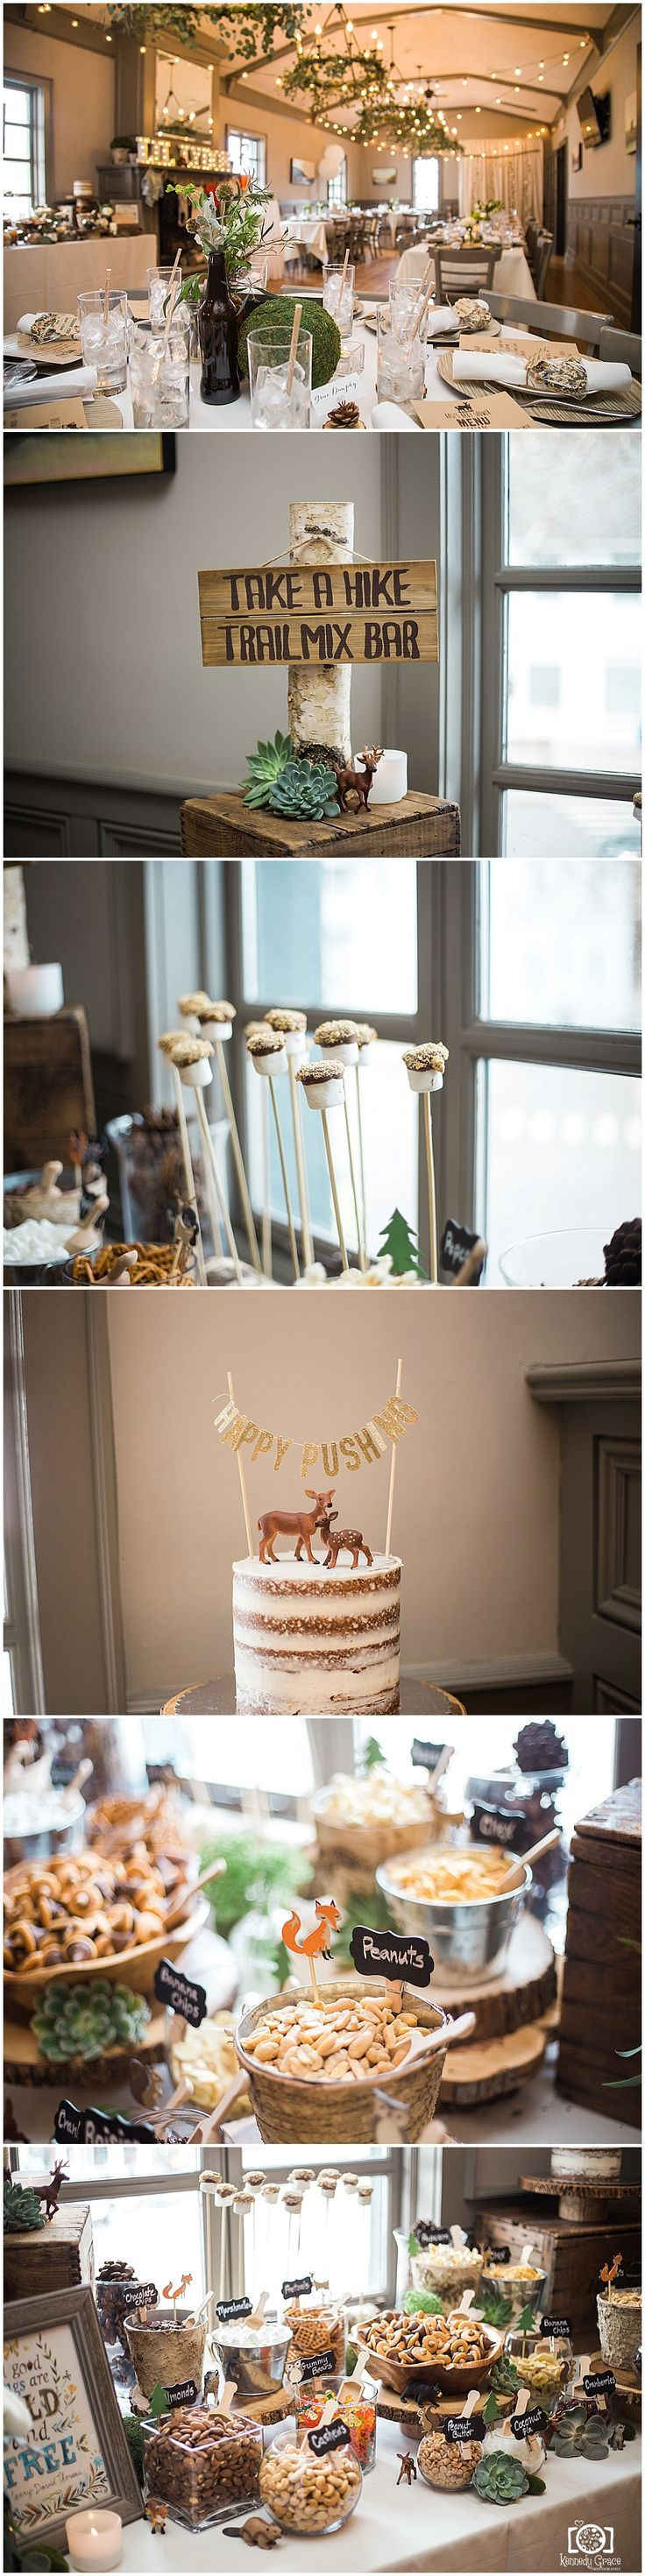 Woodland Theme Baby Shower Woodsy Boho Themed Boy Decor Ideas Piermont NY Push cake